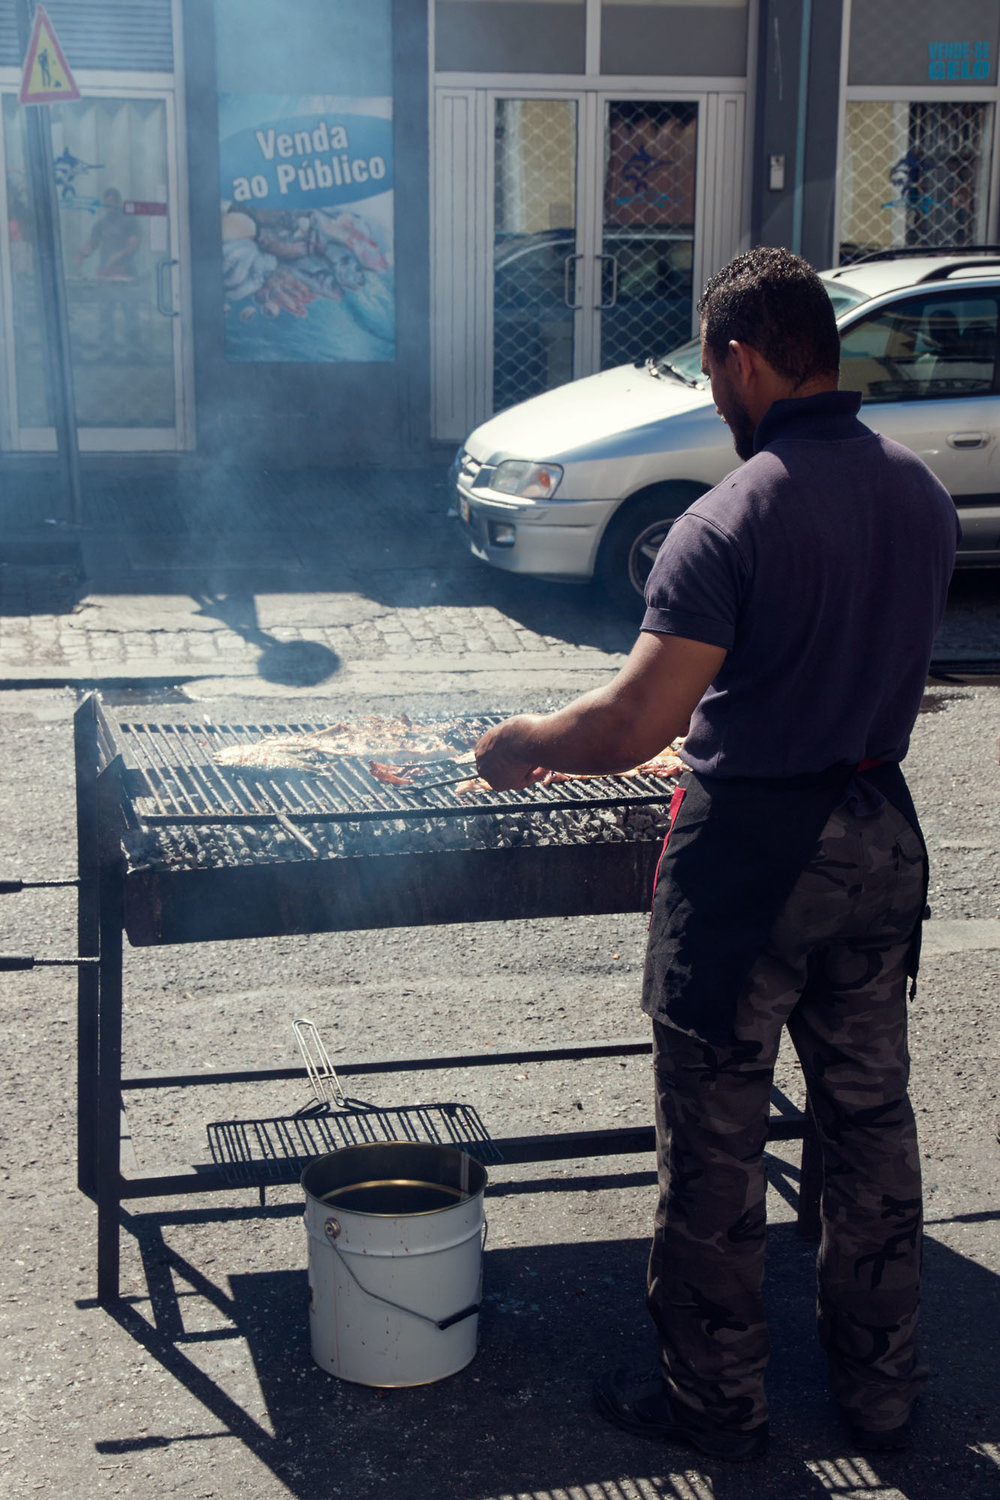 Freshly caught and grilled seafood at Tito II restaurant in Matosinhos. So tasty!